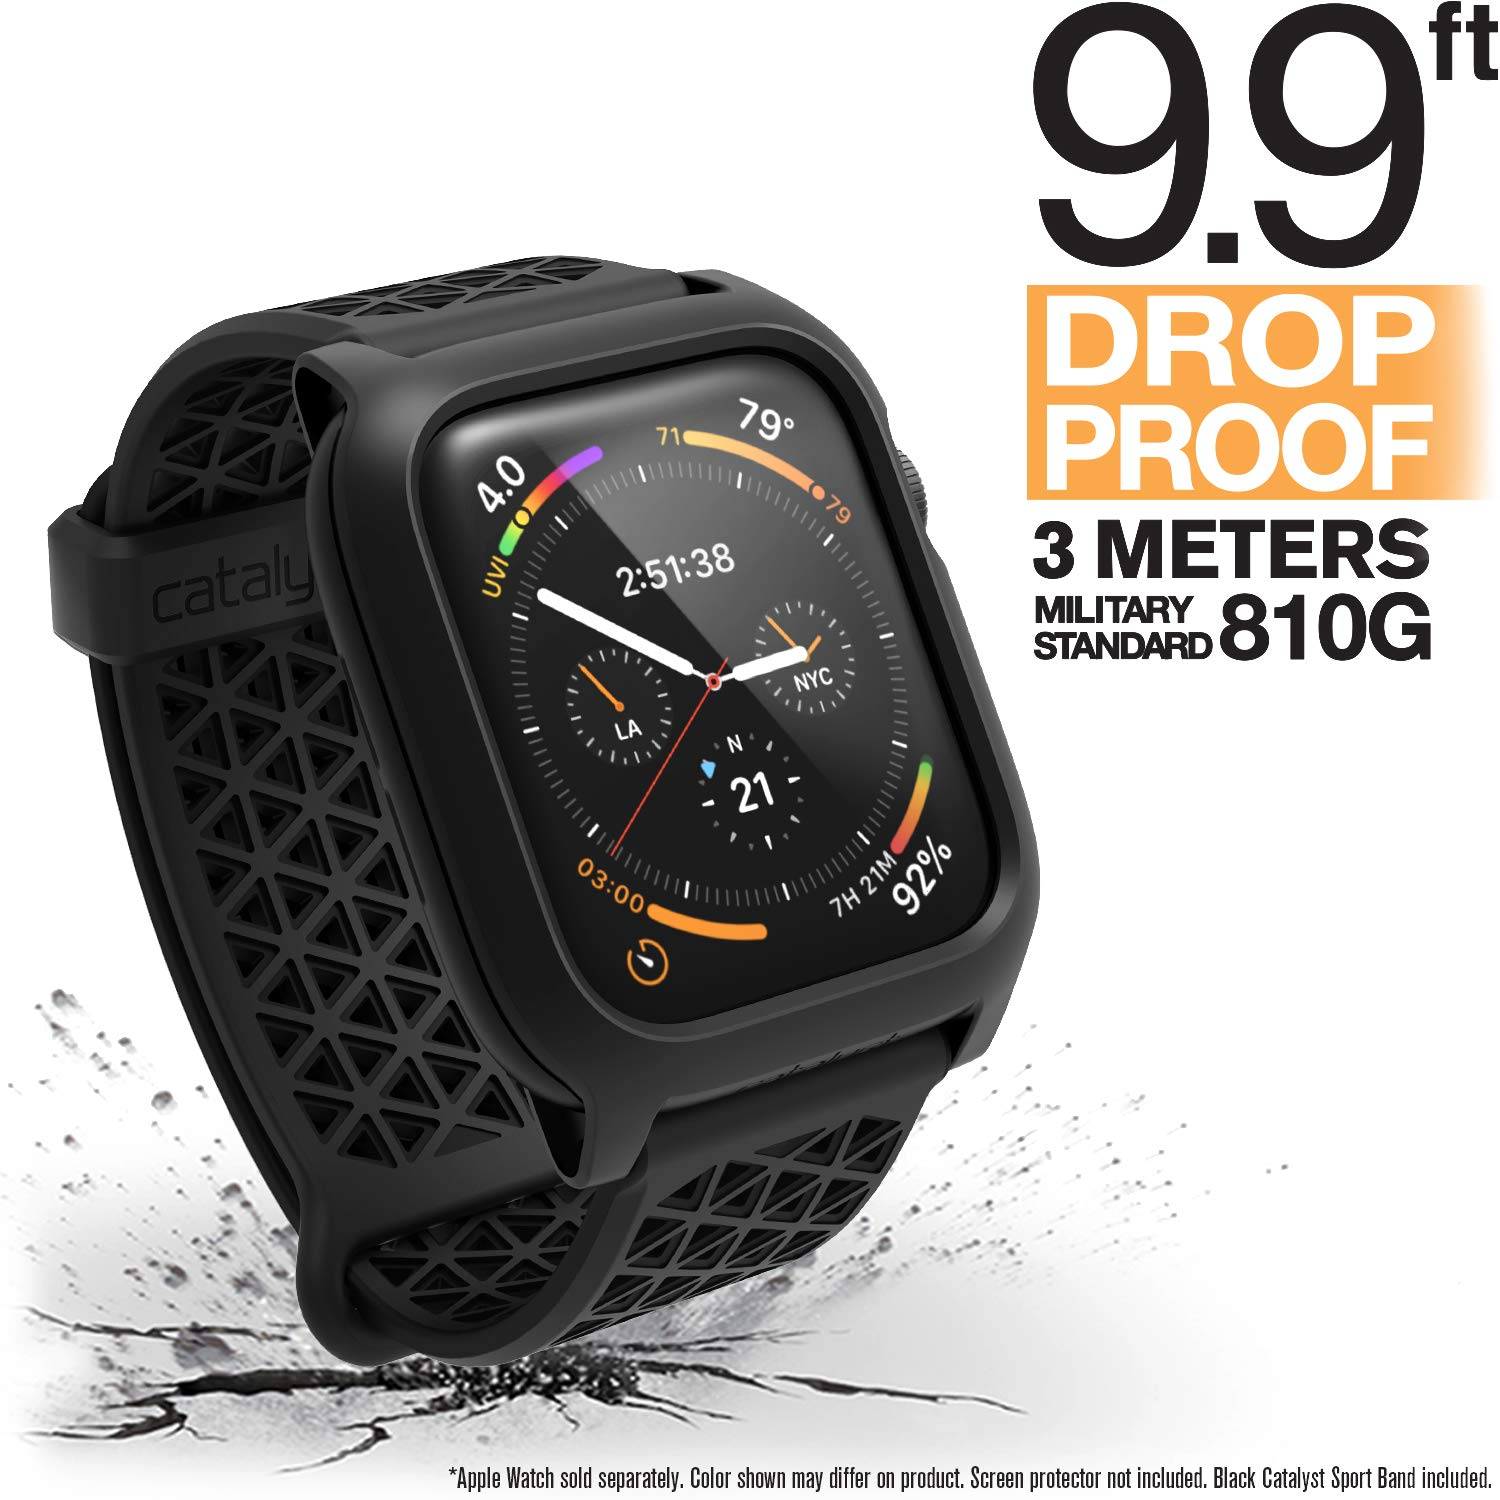 new products 26a03 db3fa Catalyst Apple Watch Series 4 Impact Case 44mm ECG and EKG Compatible  Superior Sport Band Rugged iWatch Protective Case, Drop Proof Shock Proof  Apple ...